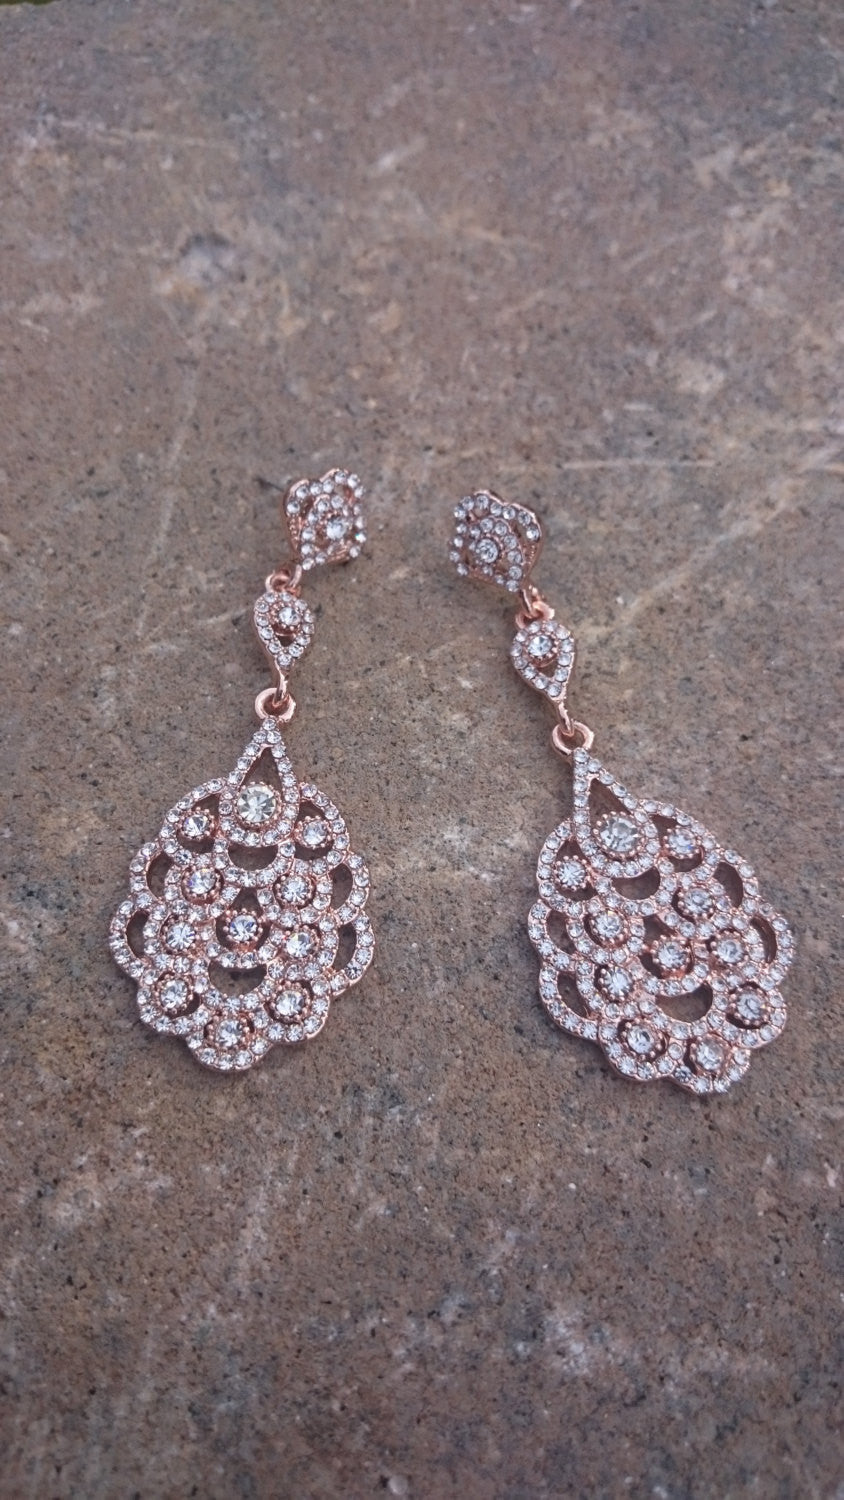 Rose Gold Earrings, Rose Gold Bridal Earrings, Art Deco Earrings, Rose Gold, Great Gatsby Style, Bridesmaid Gift, Downton Abbey, Vintage